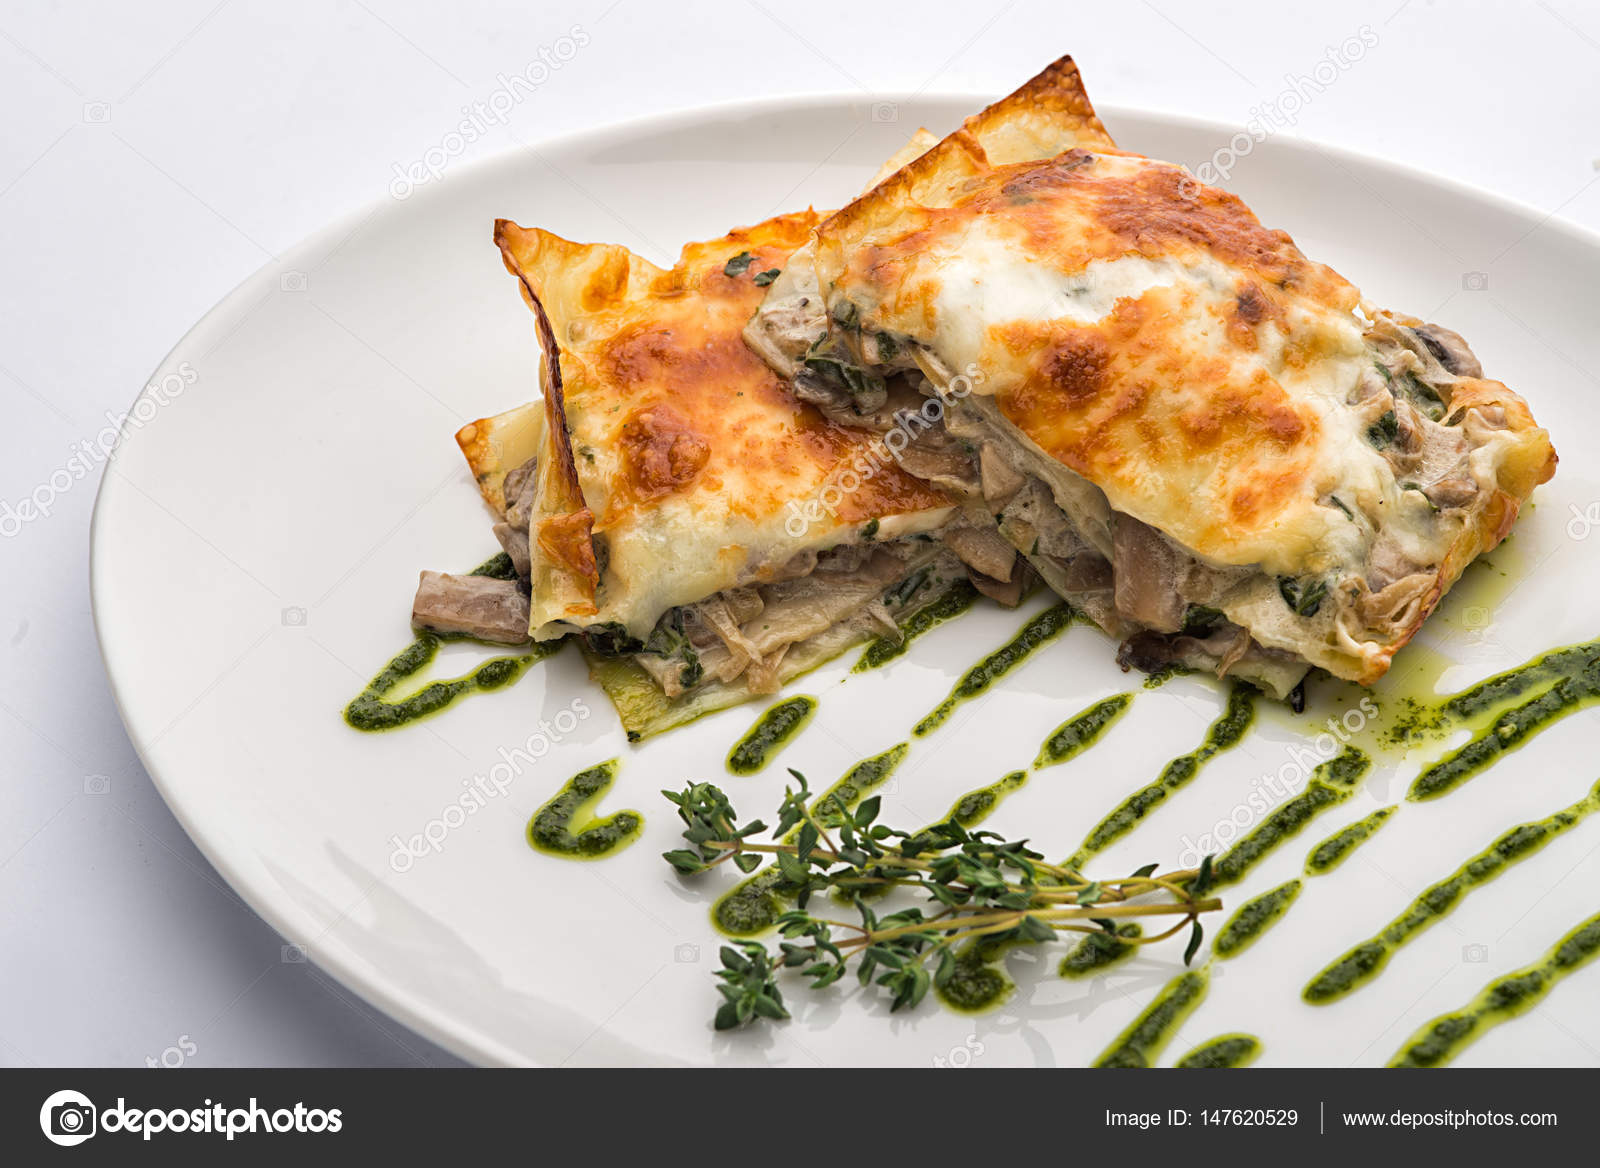 Meat pie on a plate. u2014 Stock Photo & Meat pie on a plate. u2014 Stock Photo © Onradi #147620529